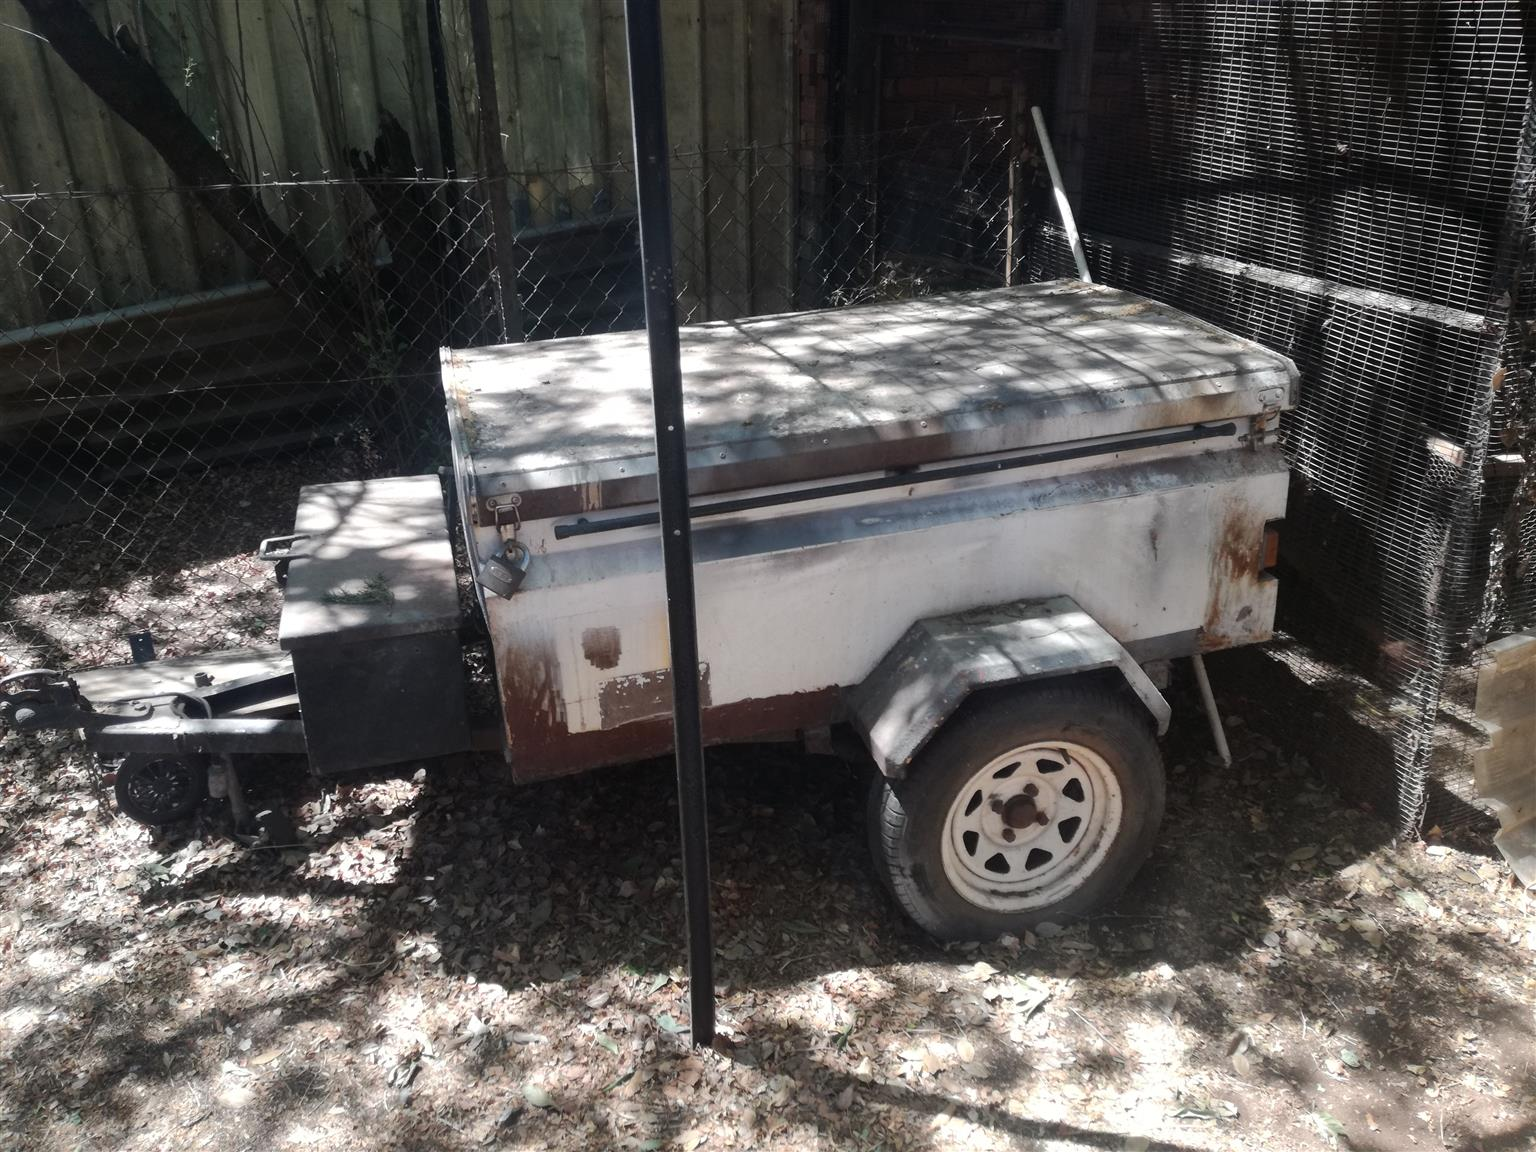 Trailer without papers